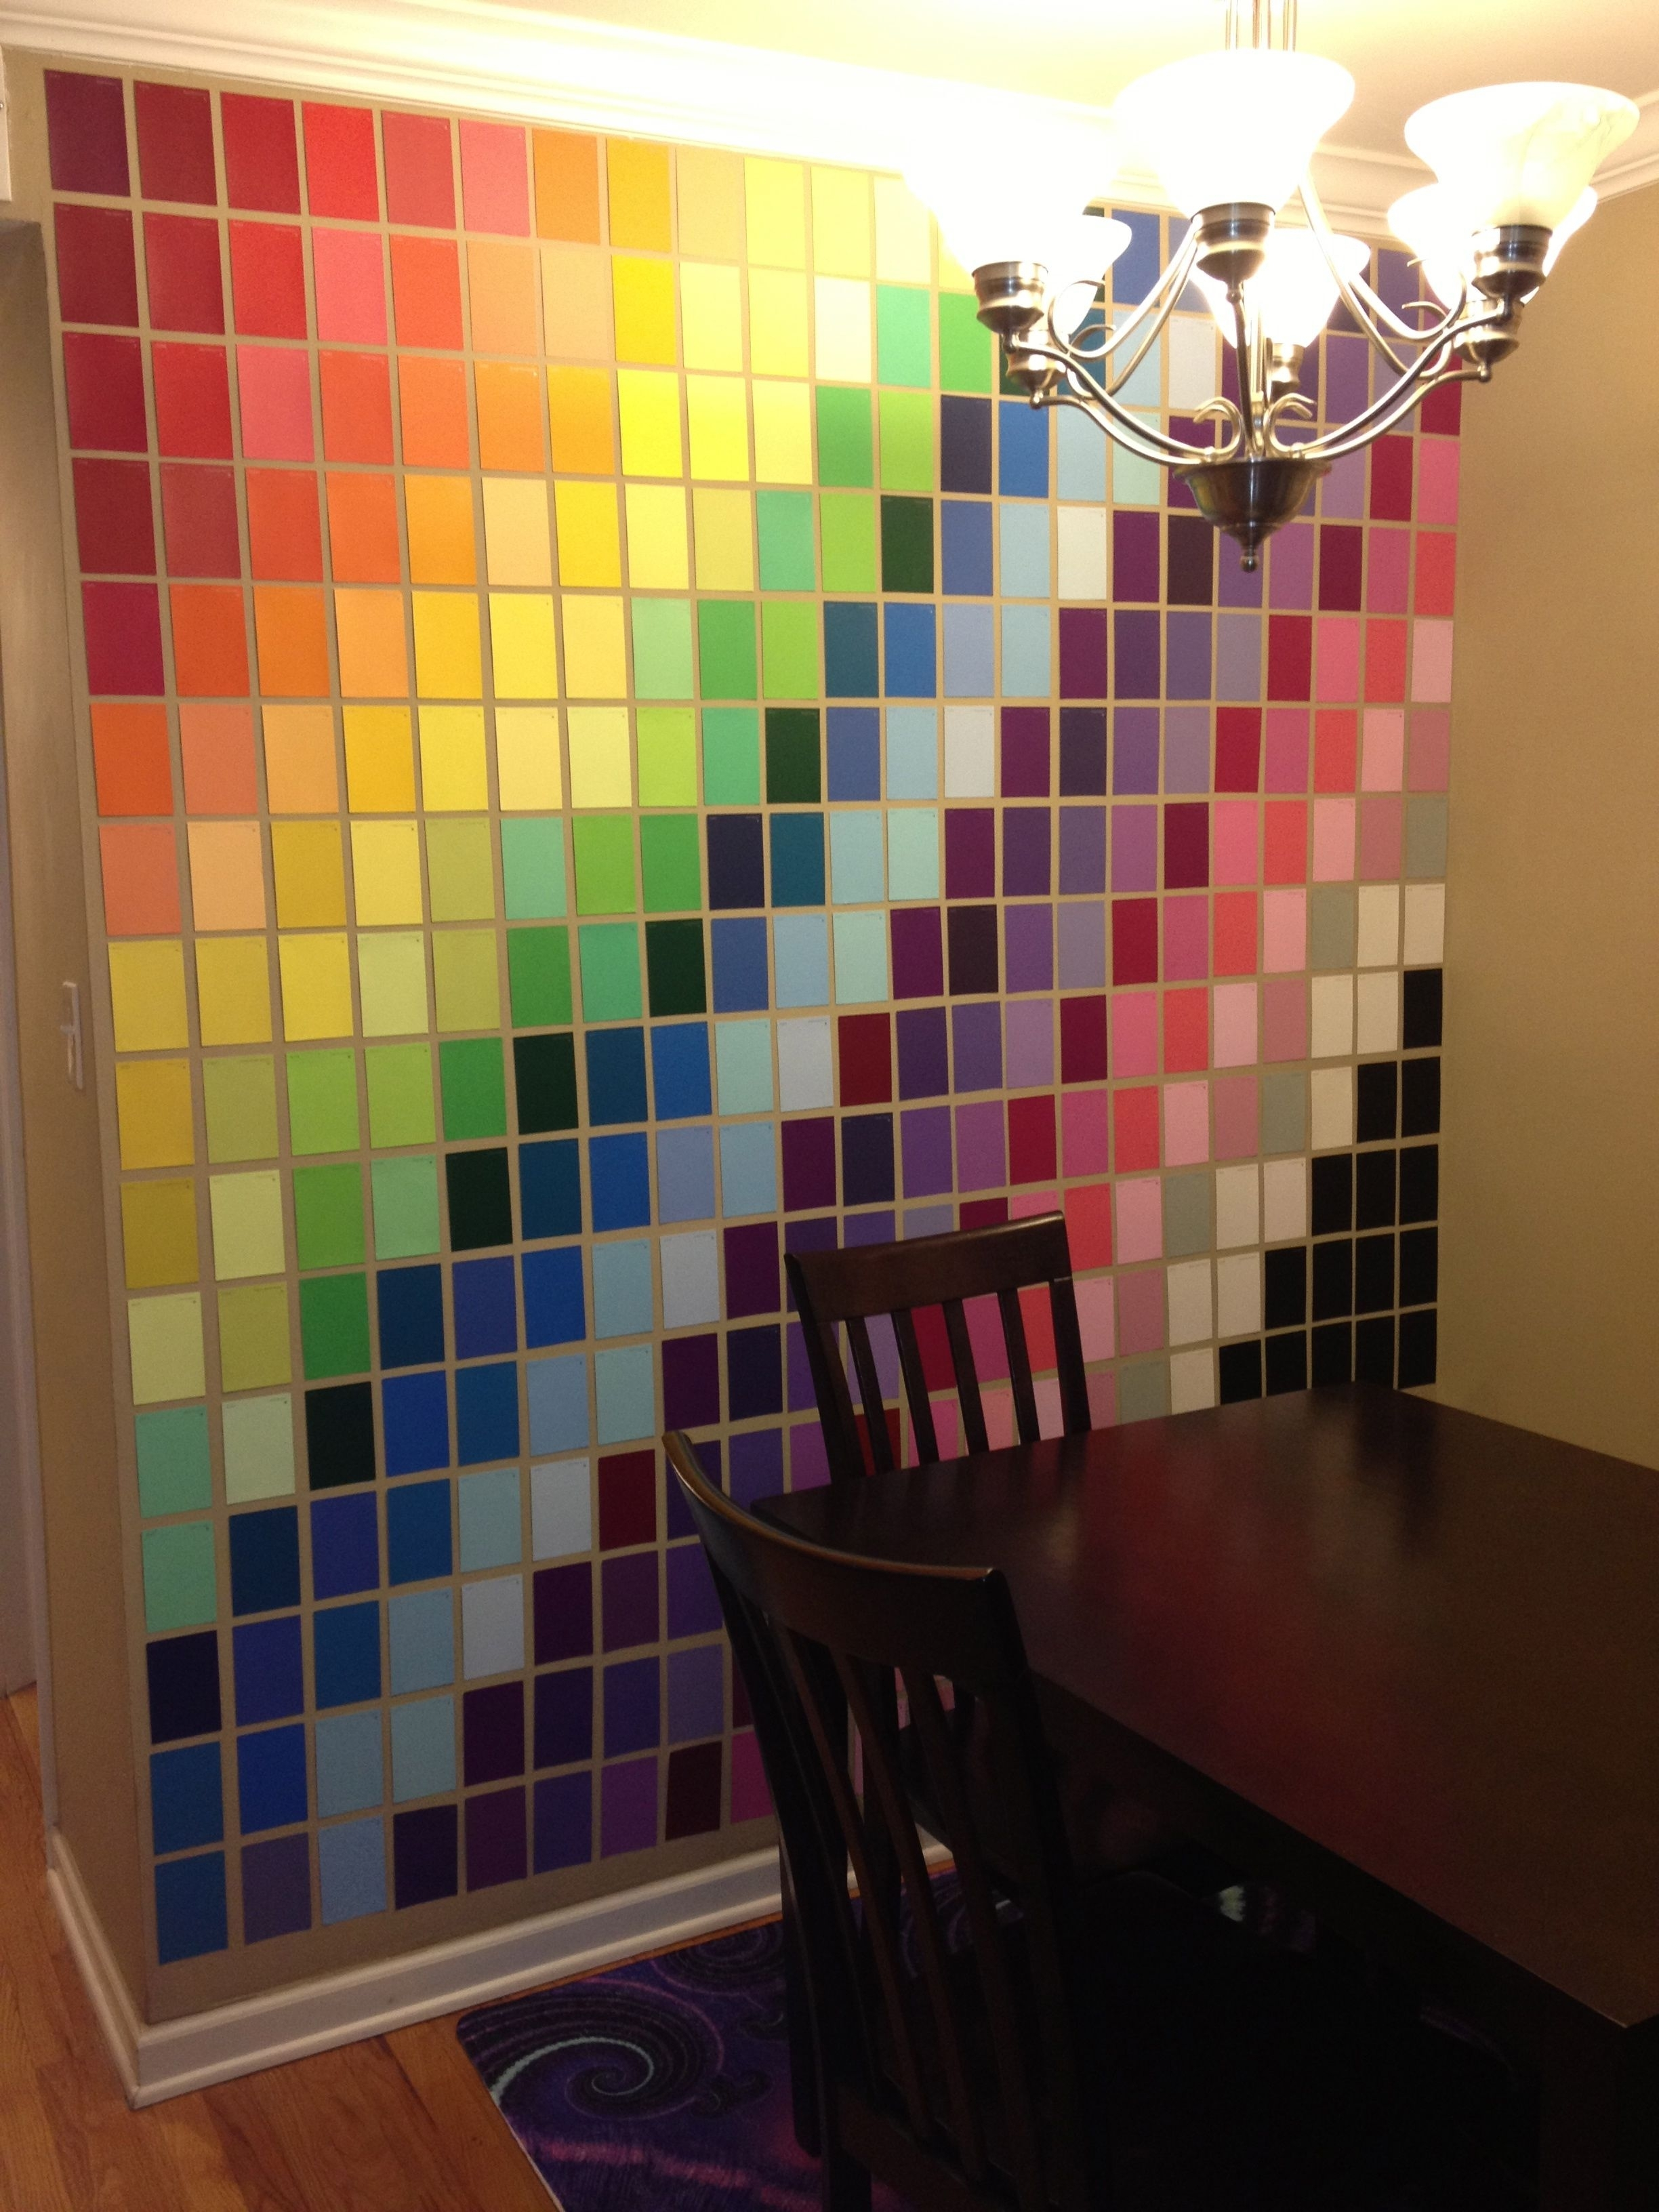 Wall Art Made With Paint Samples From Home Depot (View 4 of 15)